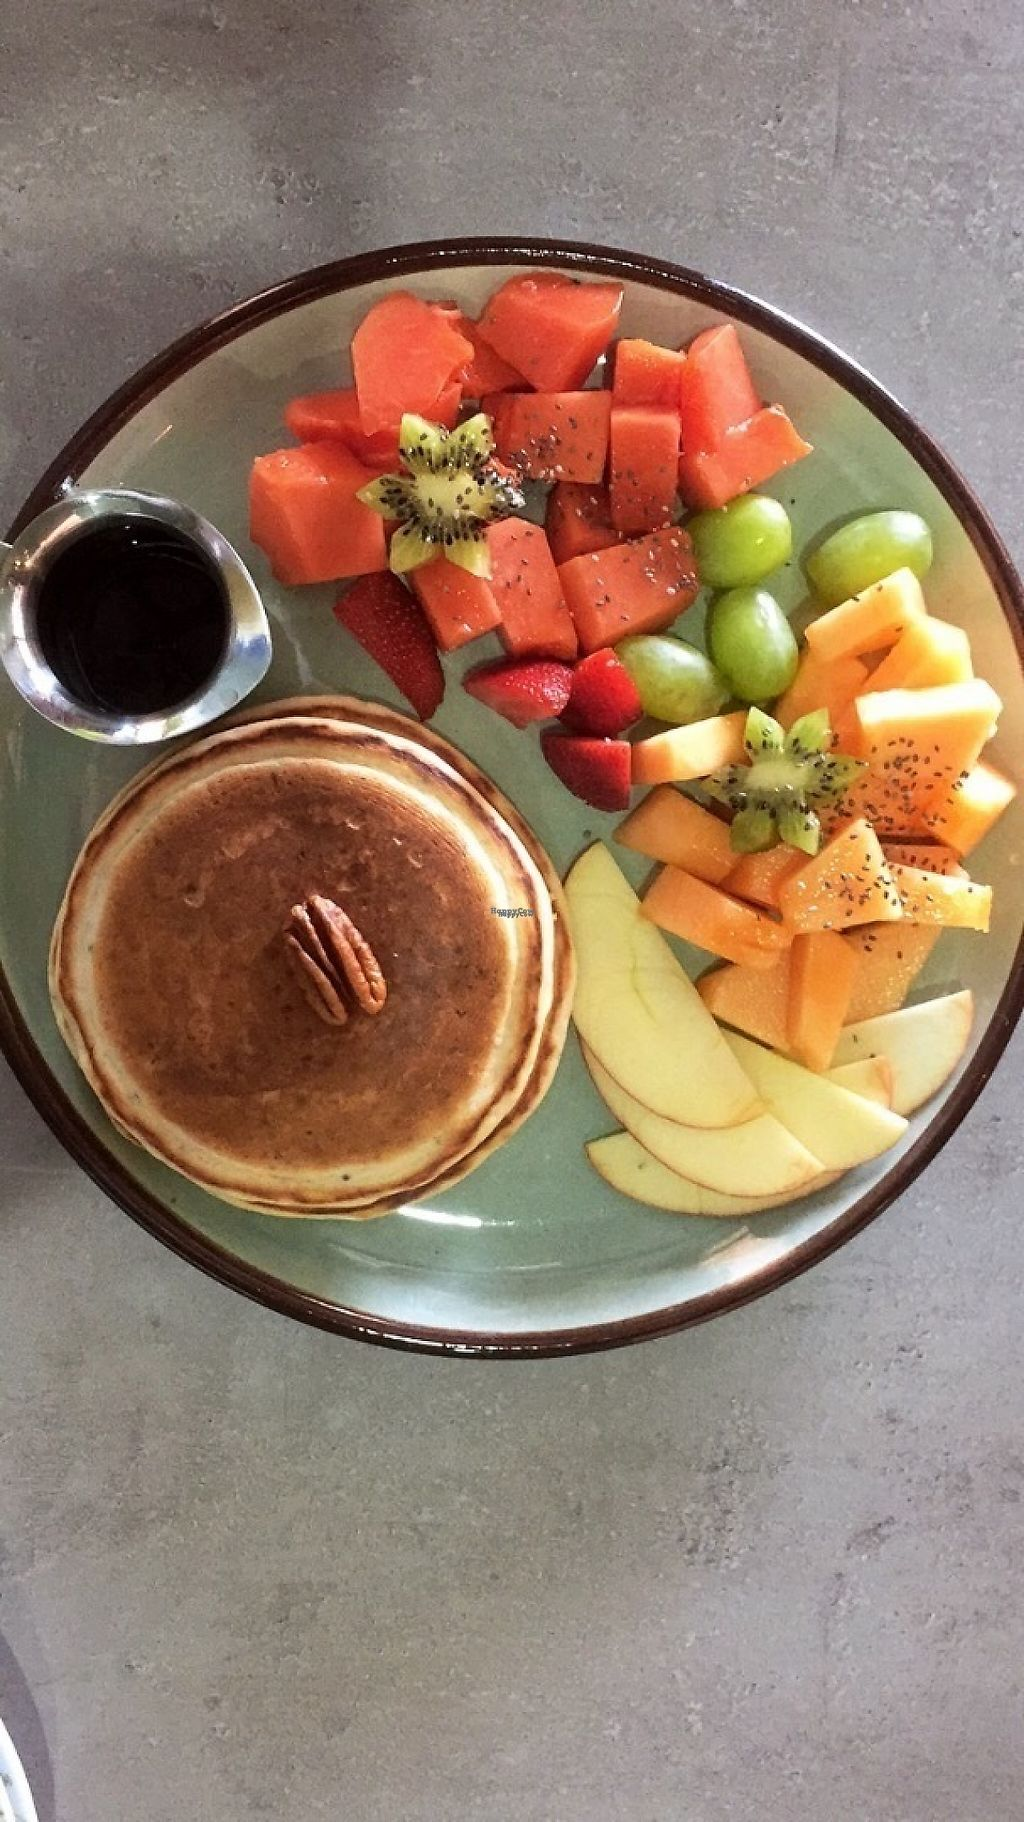 """Photo of Grunzeug Veggie Bistro  by <a href=""""/members/profile/JennGee7"""">JennGee7</a> <br/>These quinoa and chia pancakes were delicious ? <br/> March 22, 2017  - <a href='/contact/abuse/image/88762/239524'>Report</a>"""